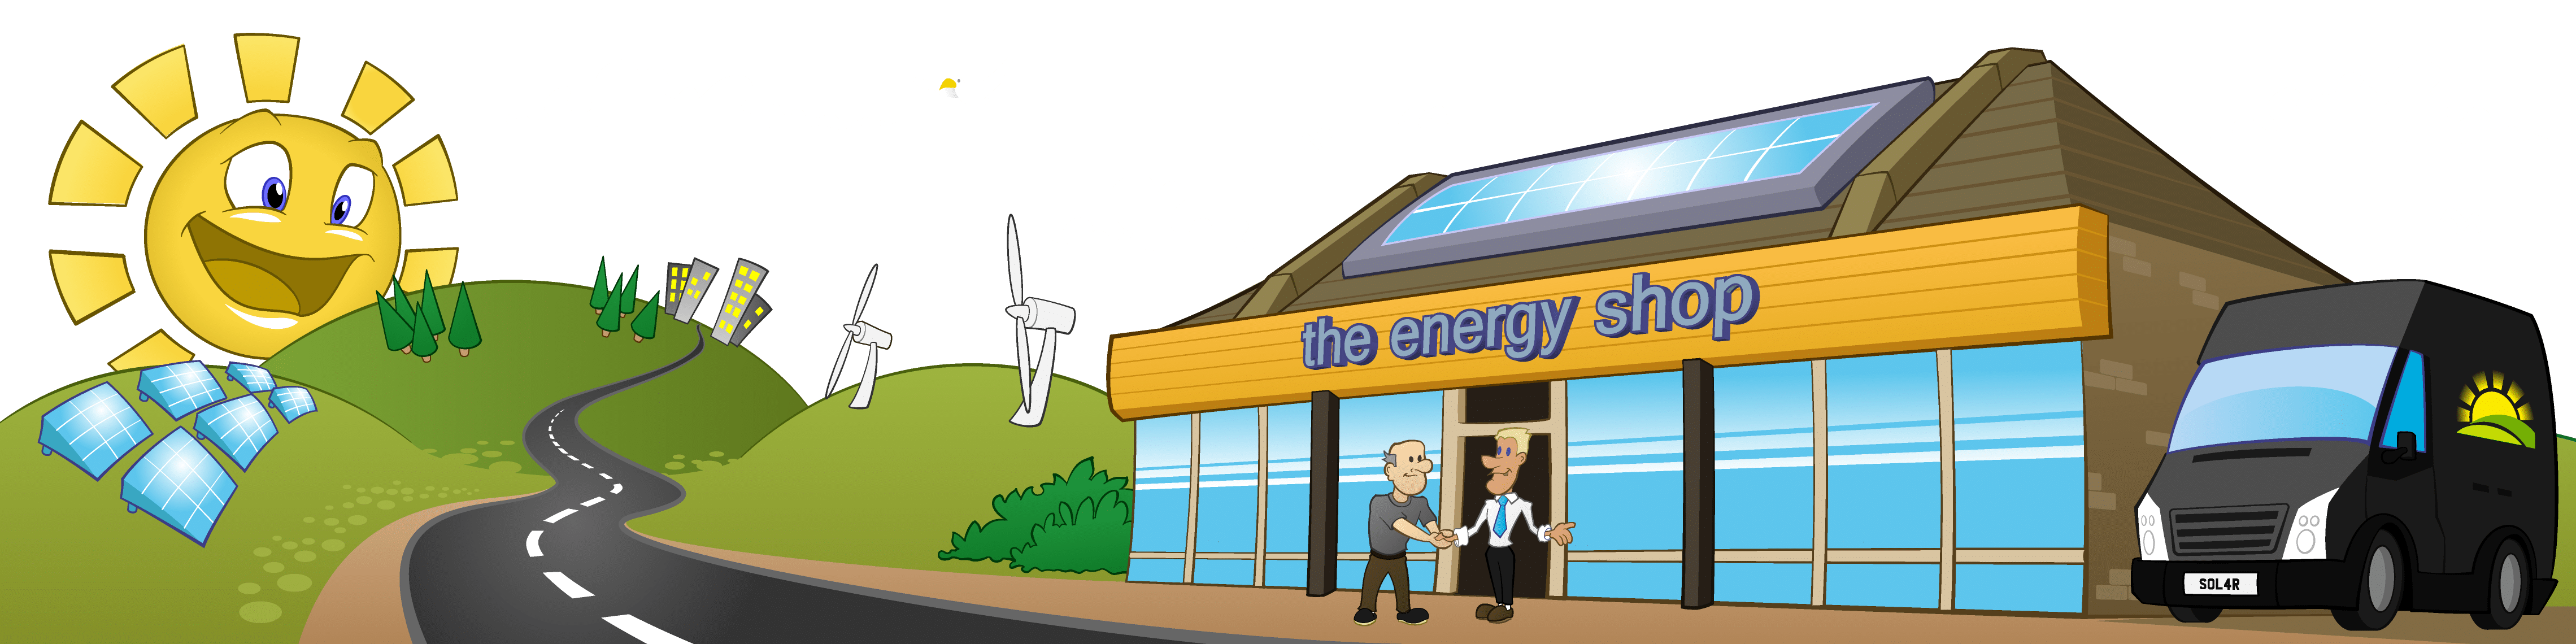 This is our 'Greenscape Street' image with the Energy Shop, fields and solar panels - an artists impression of our home on Woodbridge Road, Ipswich.